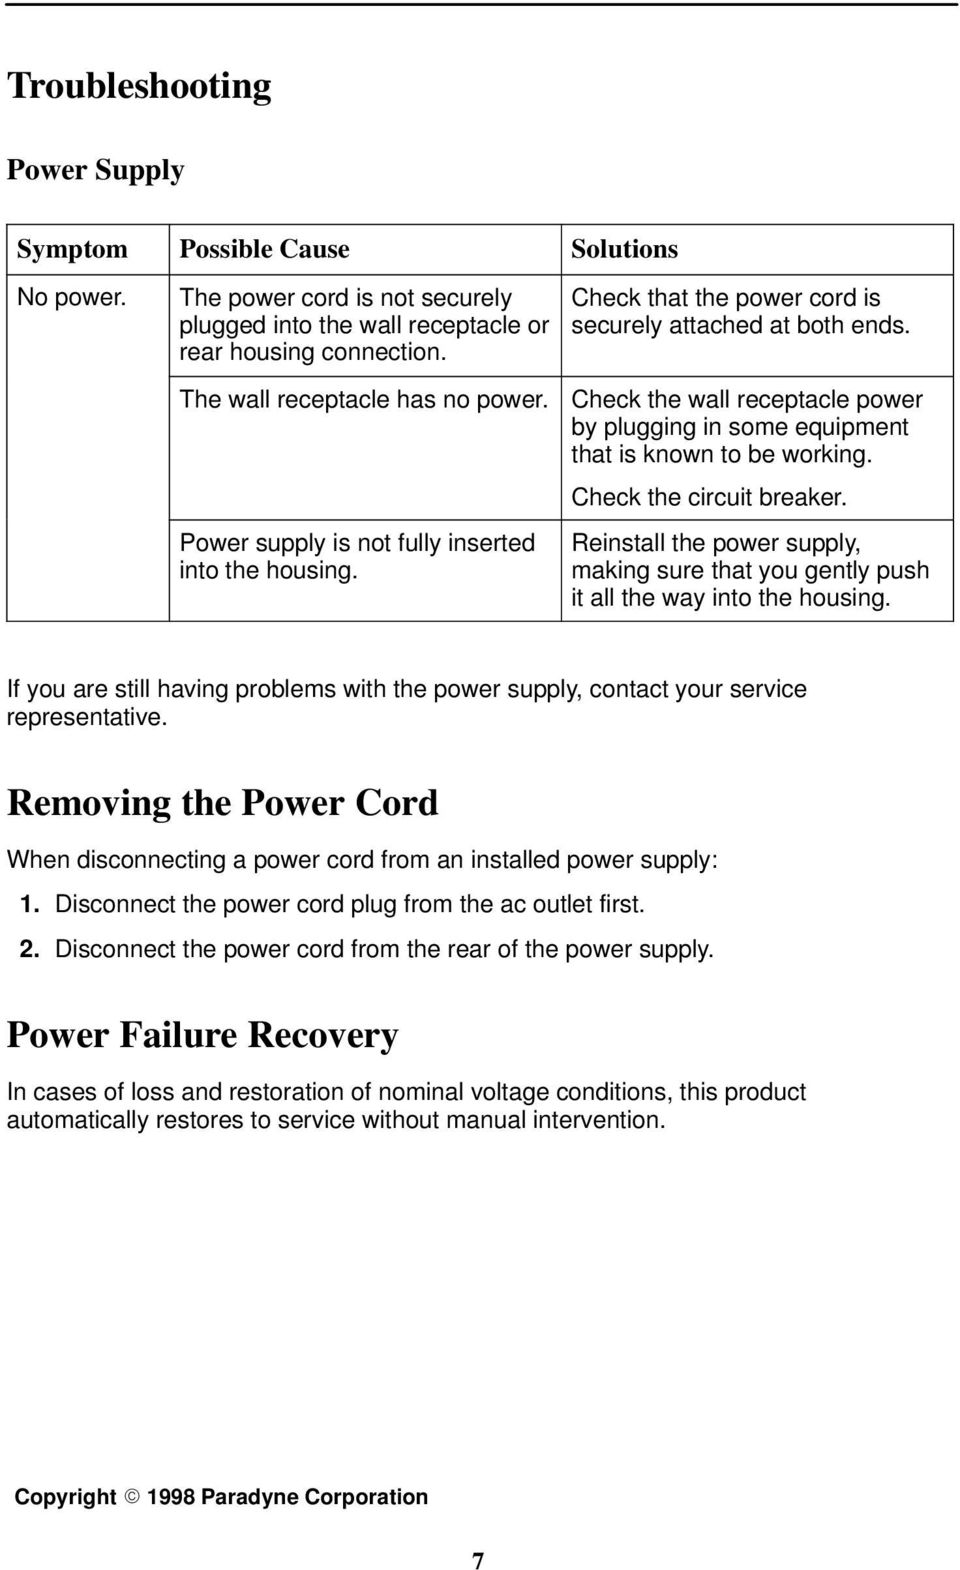 Check the wall receptacle power by plugging in some equipment that is known to be working. Check the circuit breaker.